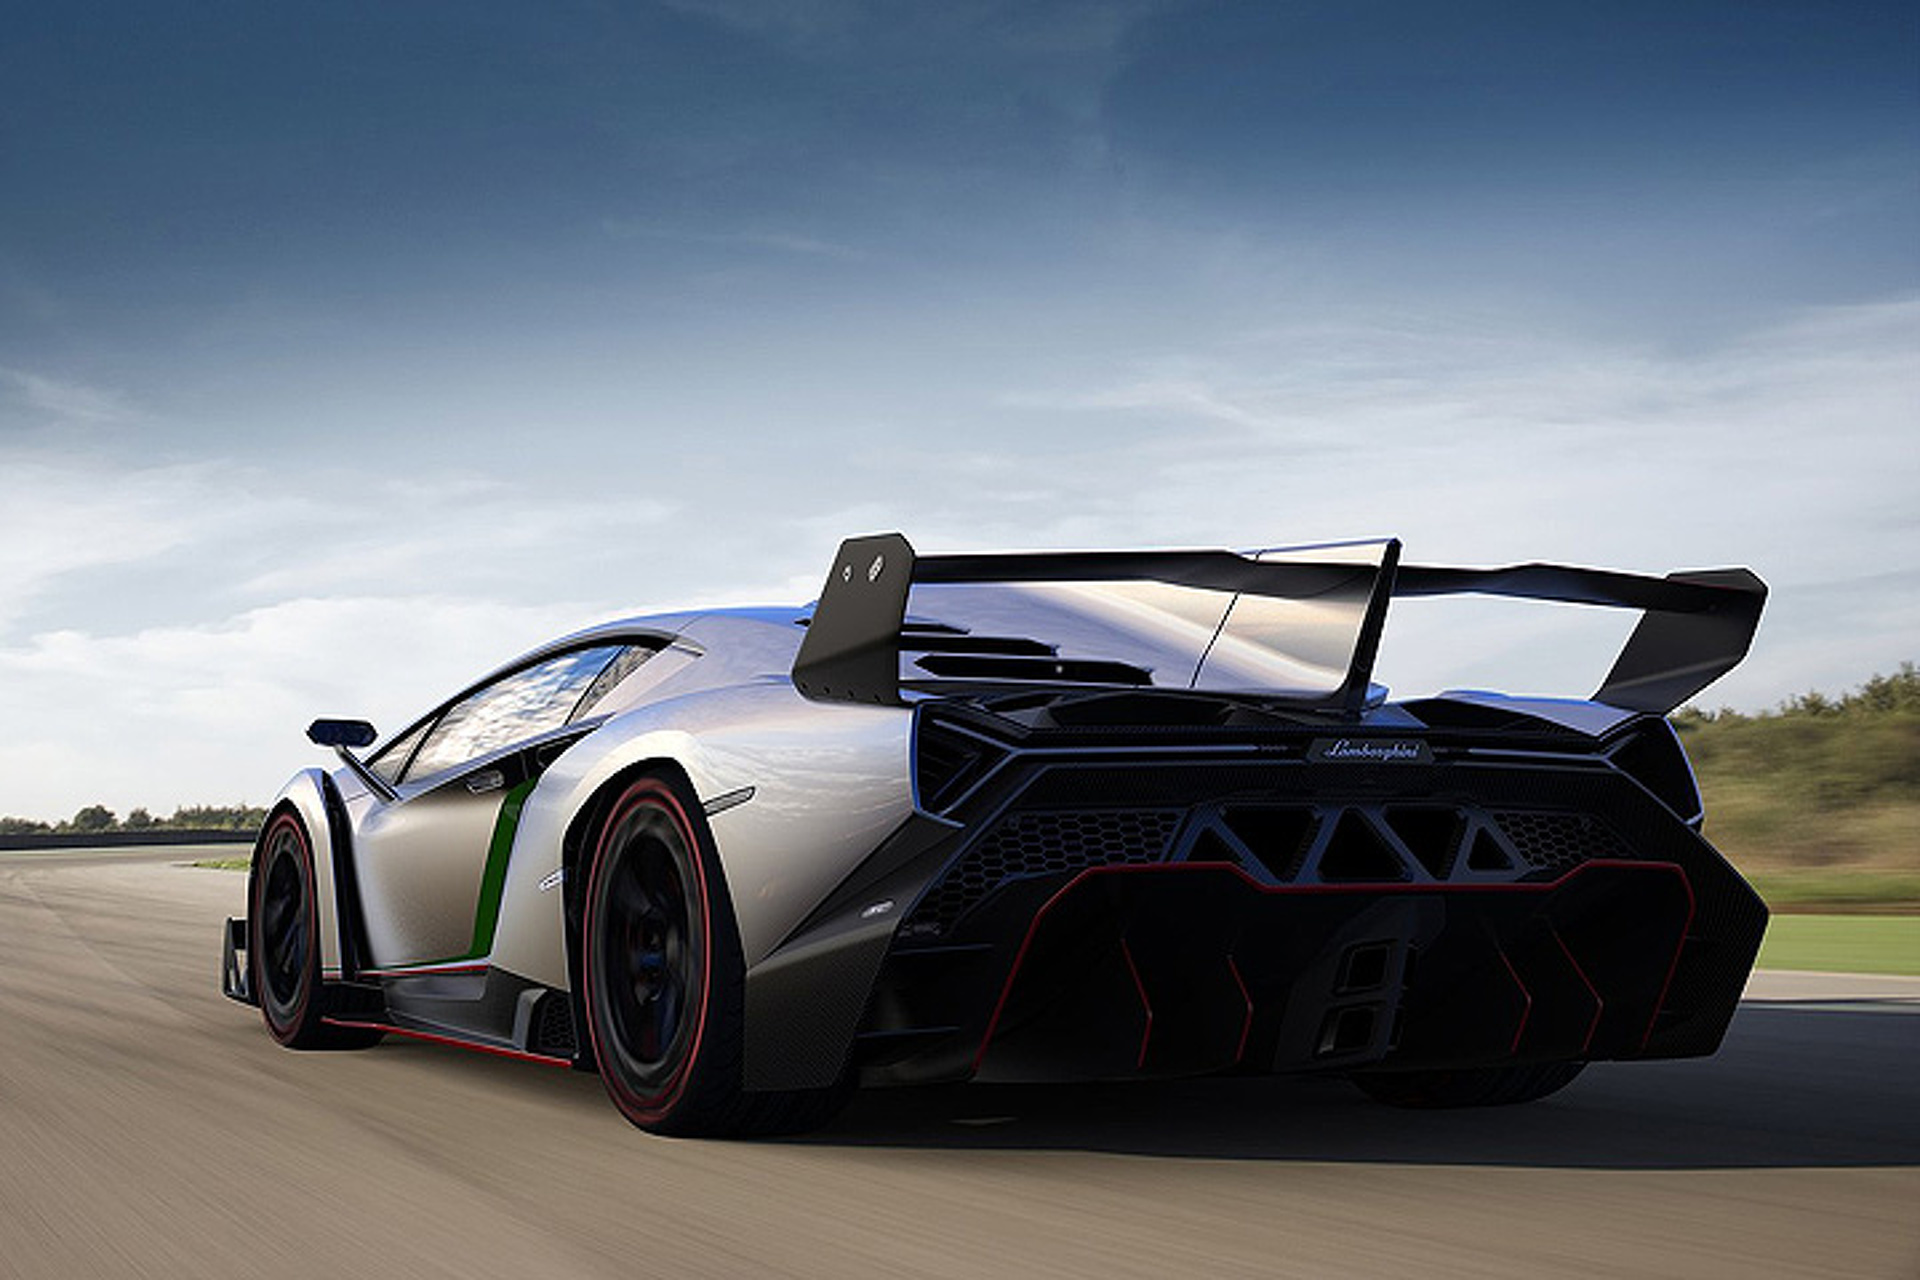 Mysterious Lamborghini Centenario Supercar Has Already Sold Out